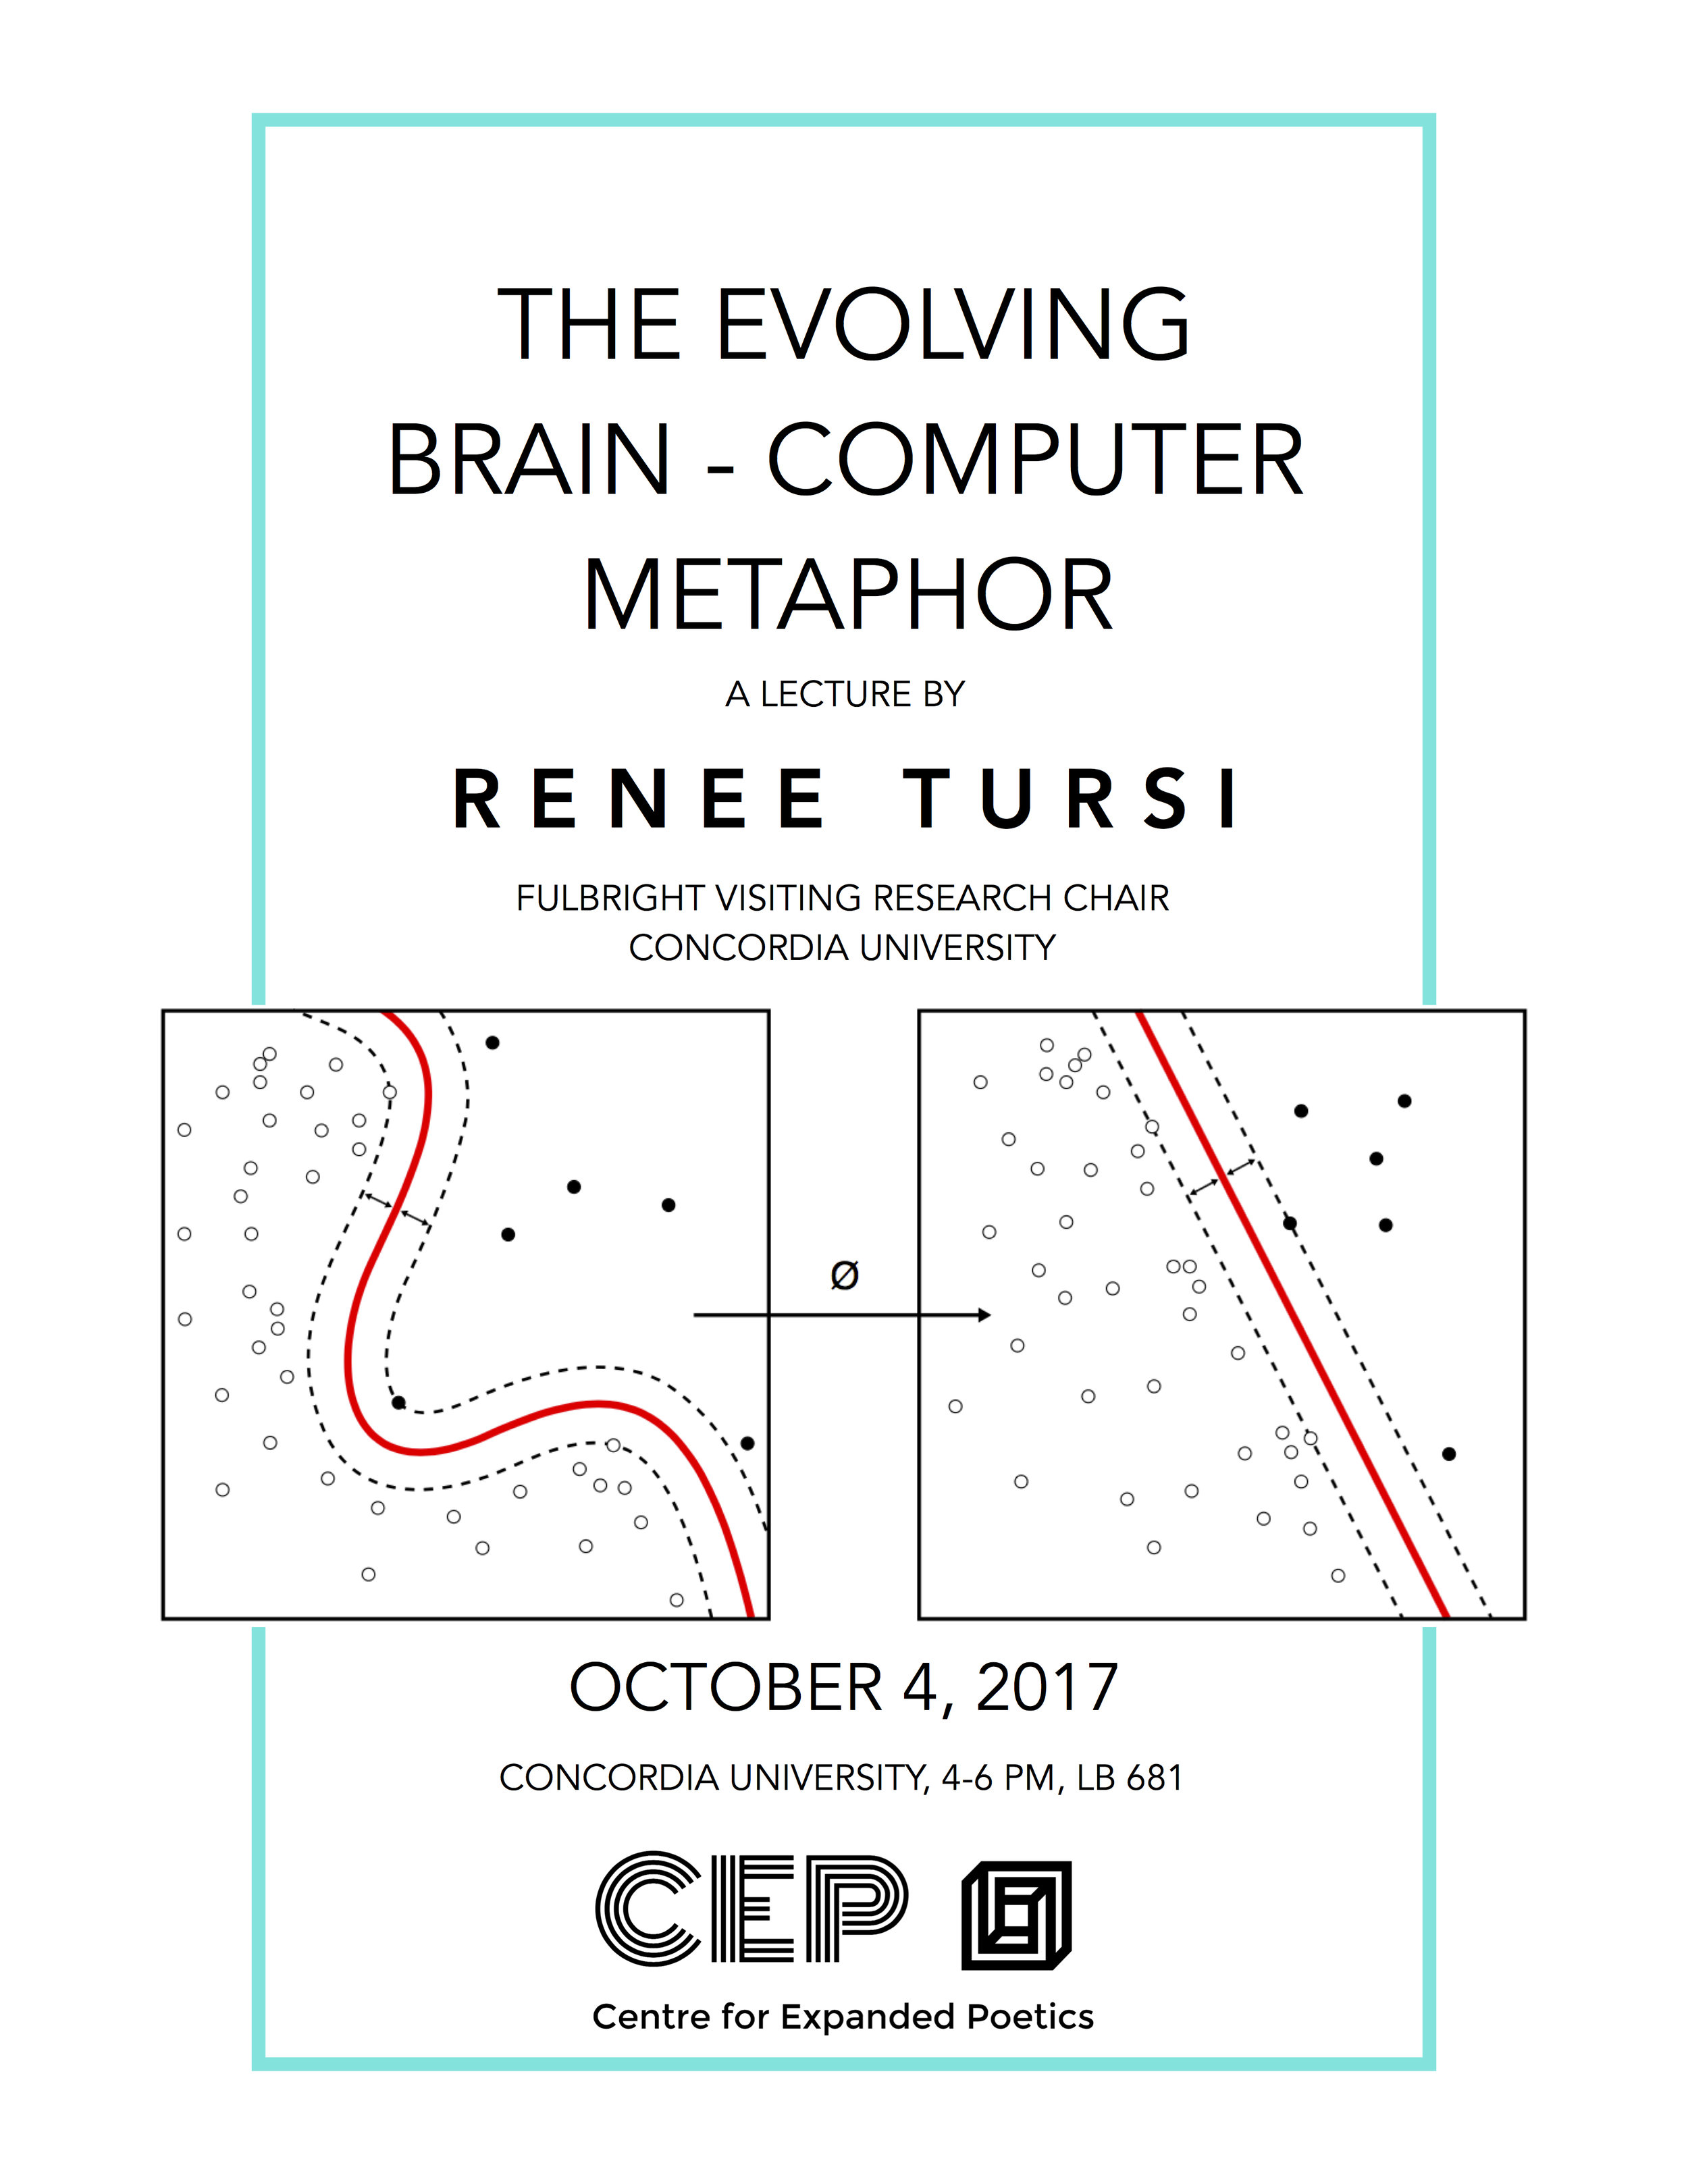 "Join us on October 4 for a lecture on deep learning and ""The Evolving Brain-Computer Metaphor"" by Renee Tursi, Fulbright Visiting Research Chair at Concordia University and affiliate of the CEP, 2017-2018."